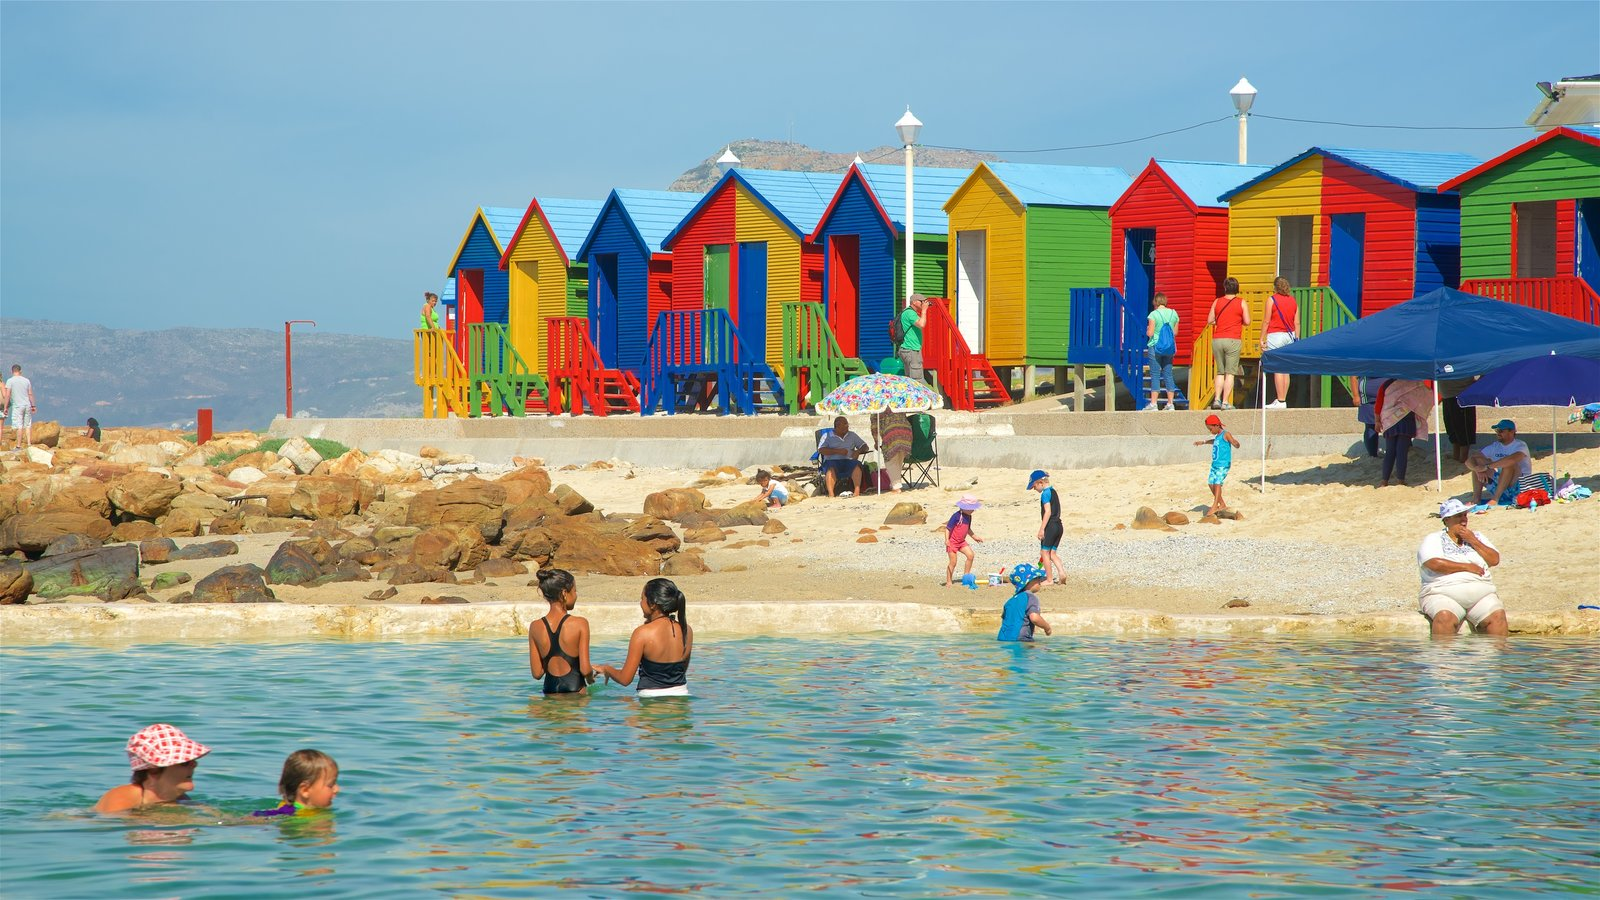 Cape Town which includes swimming, a coastal town and a pool